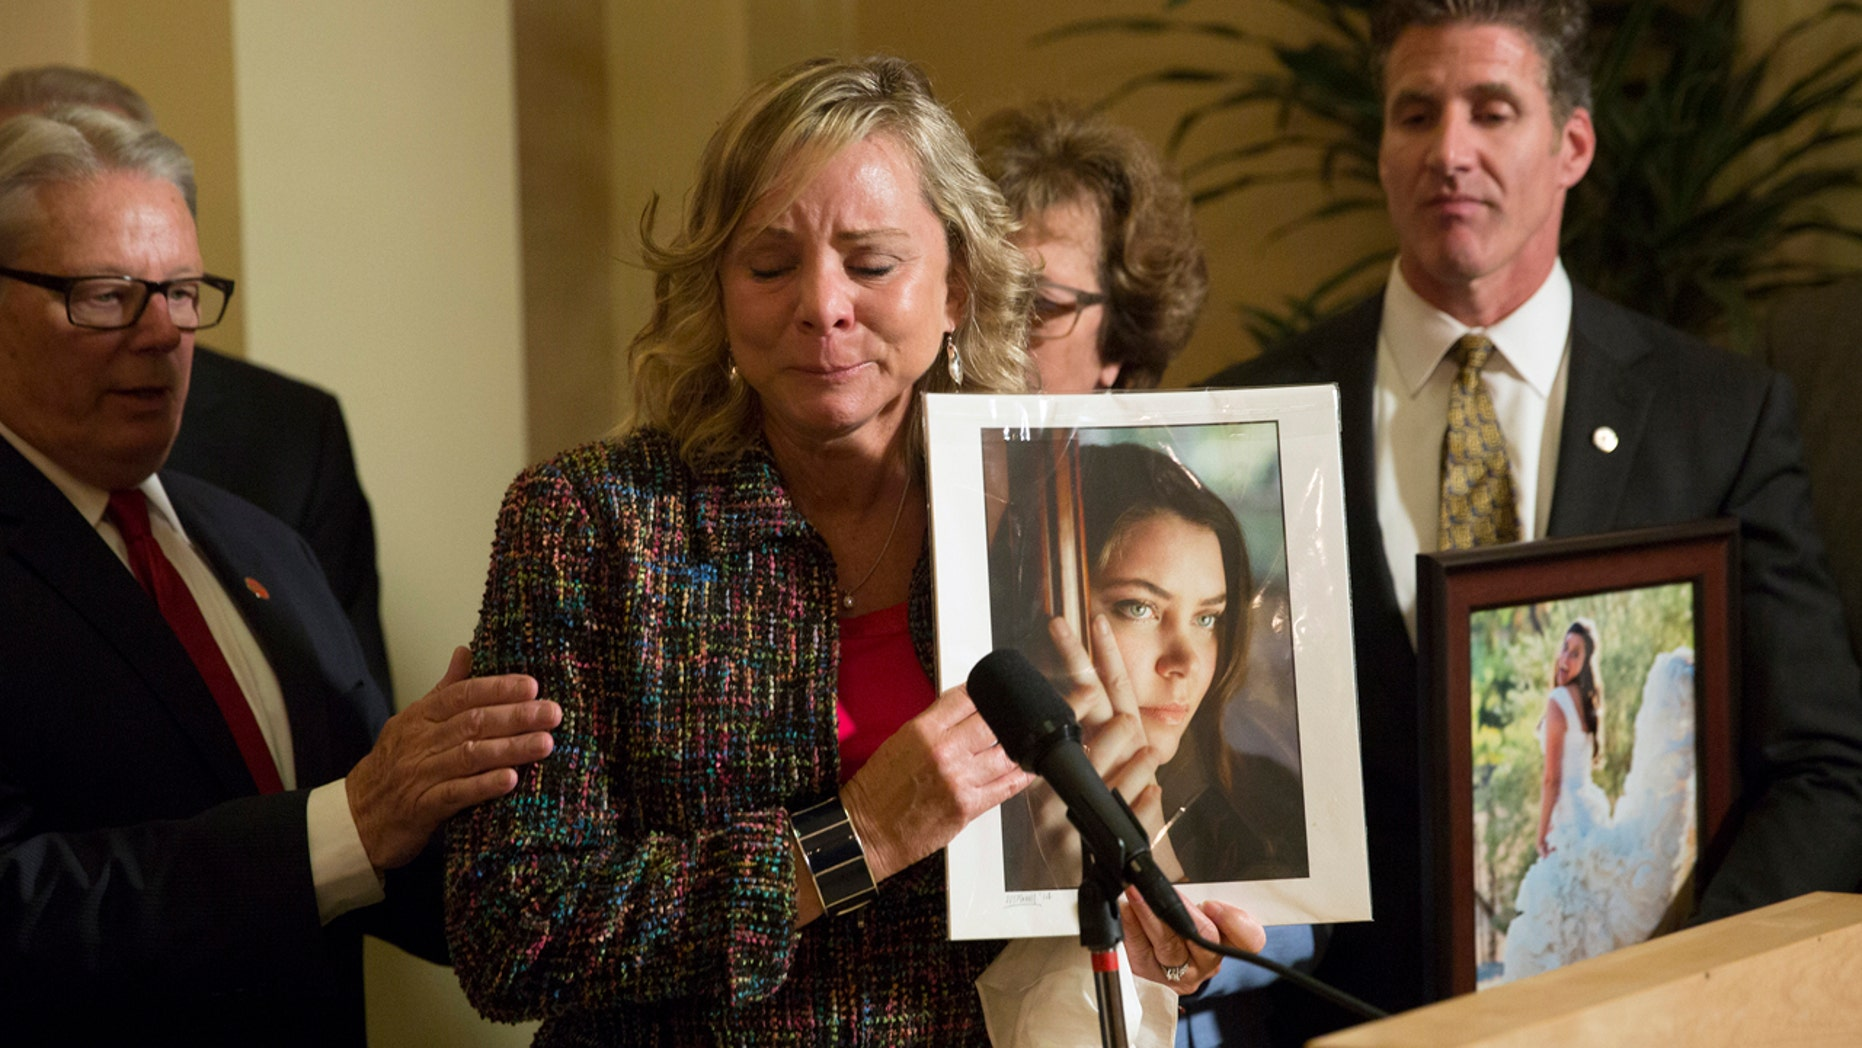 FILE 2015: Debbie Ziegler, mother of Brittany Maynard, speaks to the media after the passage of legislation, which would allow terminally ill patients to legally end their lives, at the state Capitol, in Sacramento.